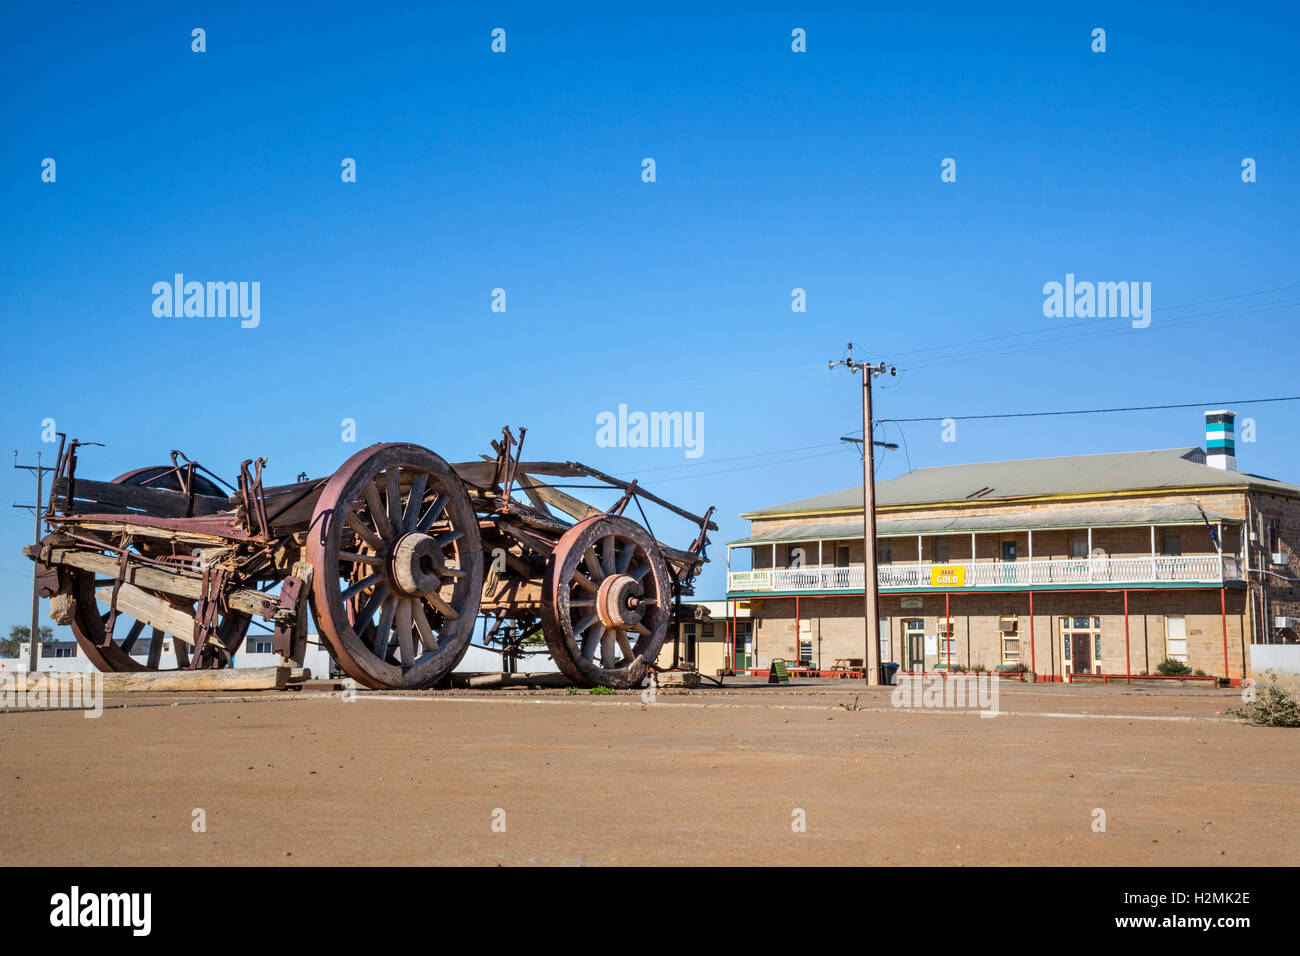 old bullock cart at the Maree Hotel, South Australia - Stock Image